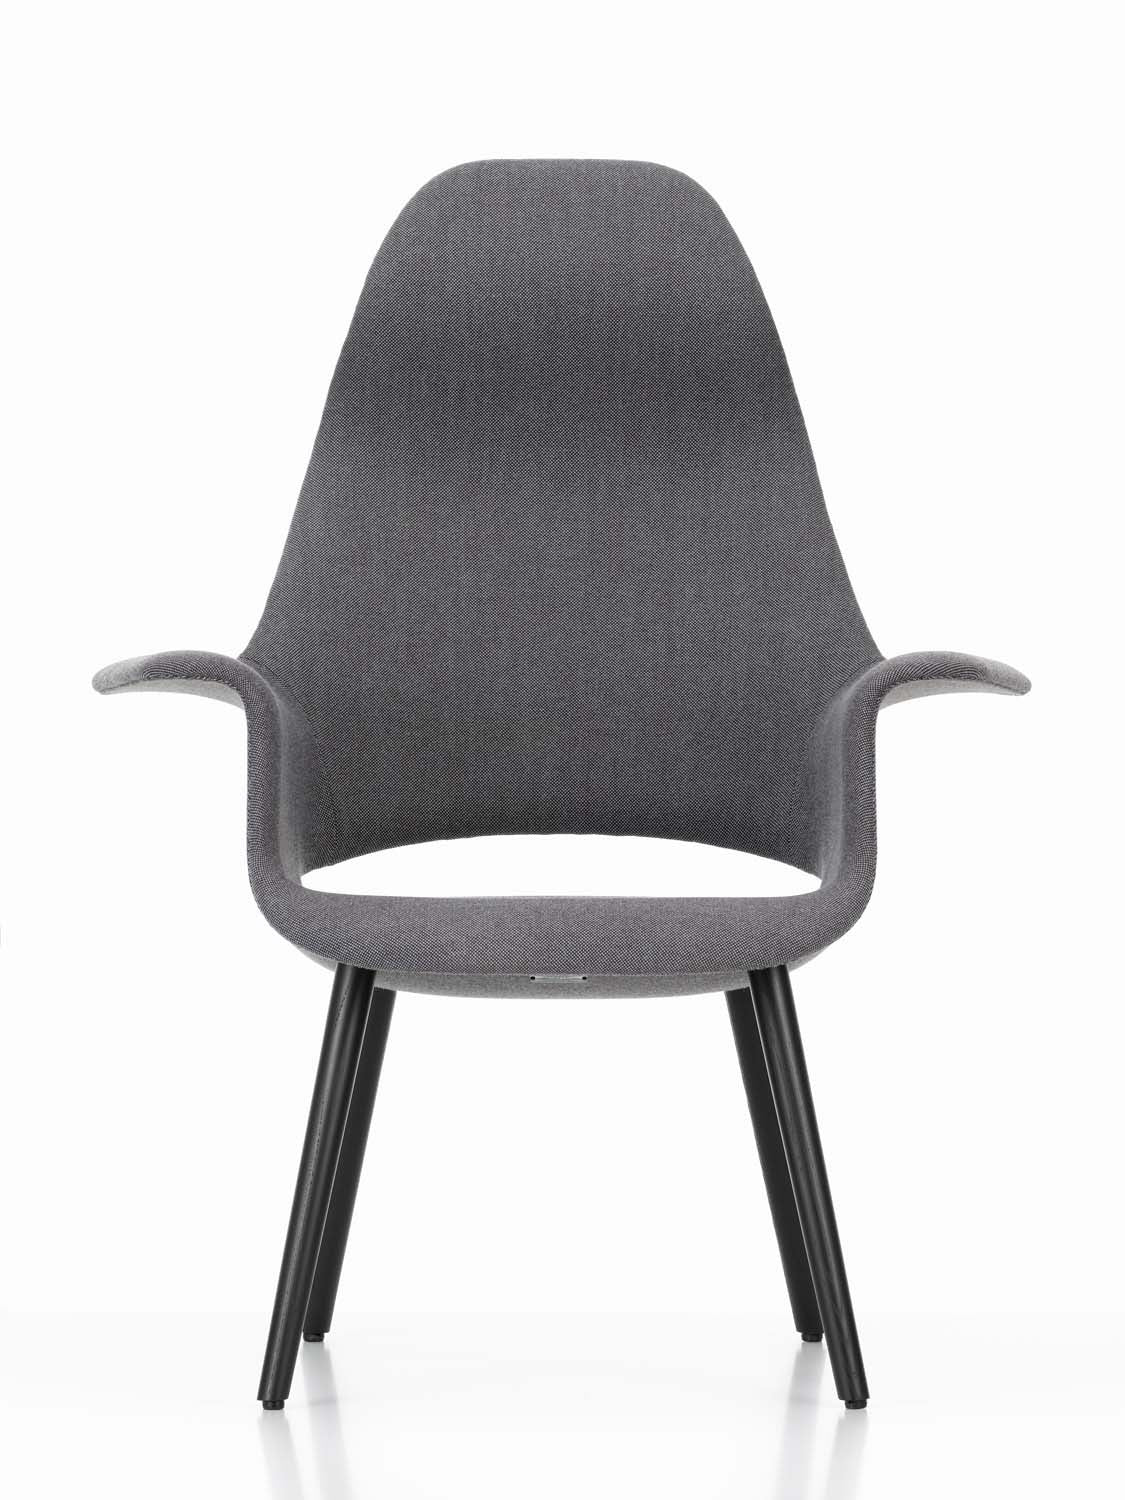 Eames Saarinen Organic Highback Chair Couch Potato Pany